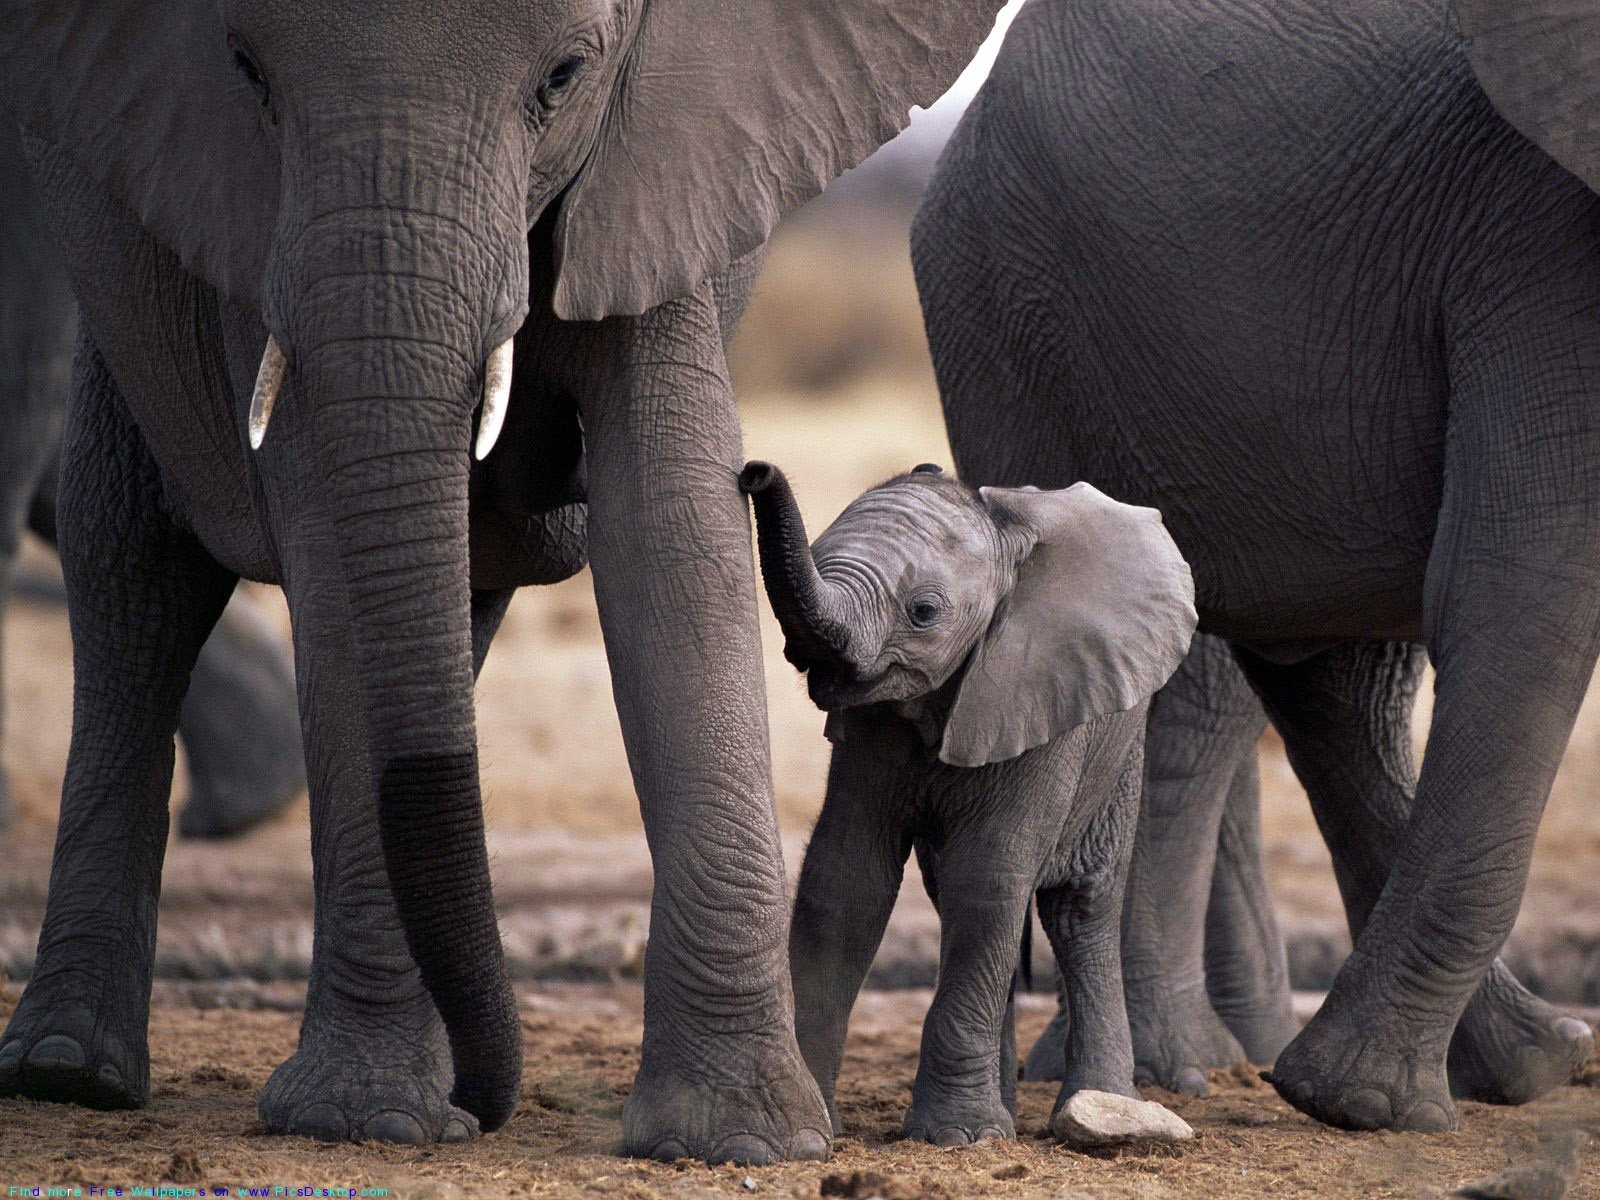 Elephant with calves